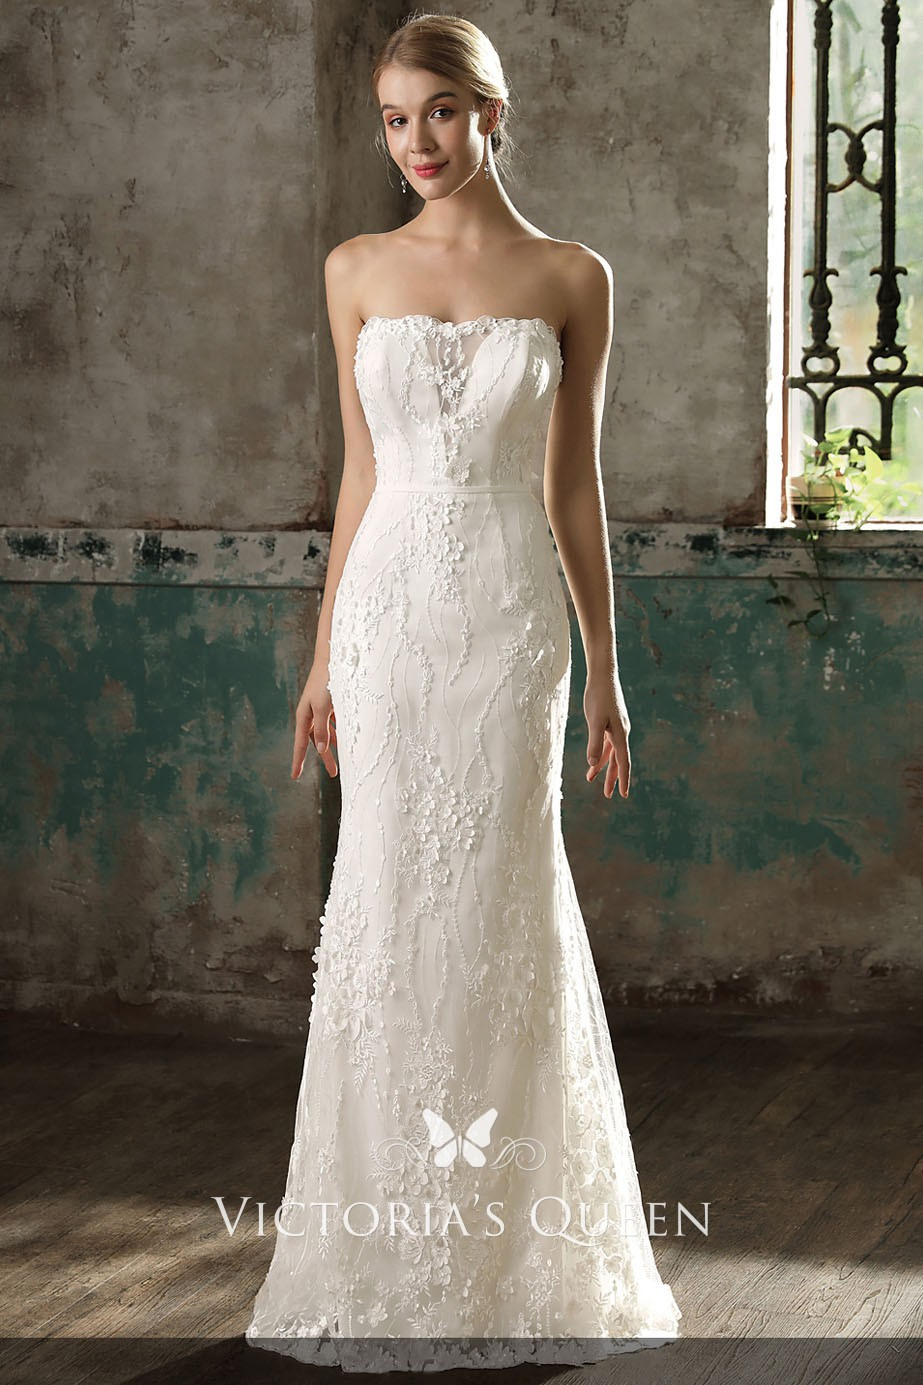 Strapless Lace Appliqued Fit And Flare Wedding Dress